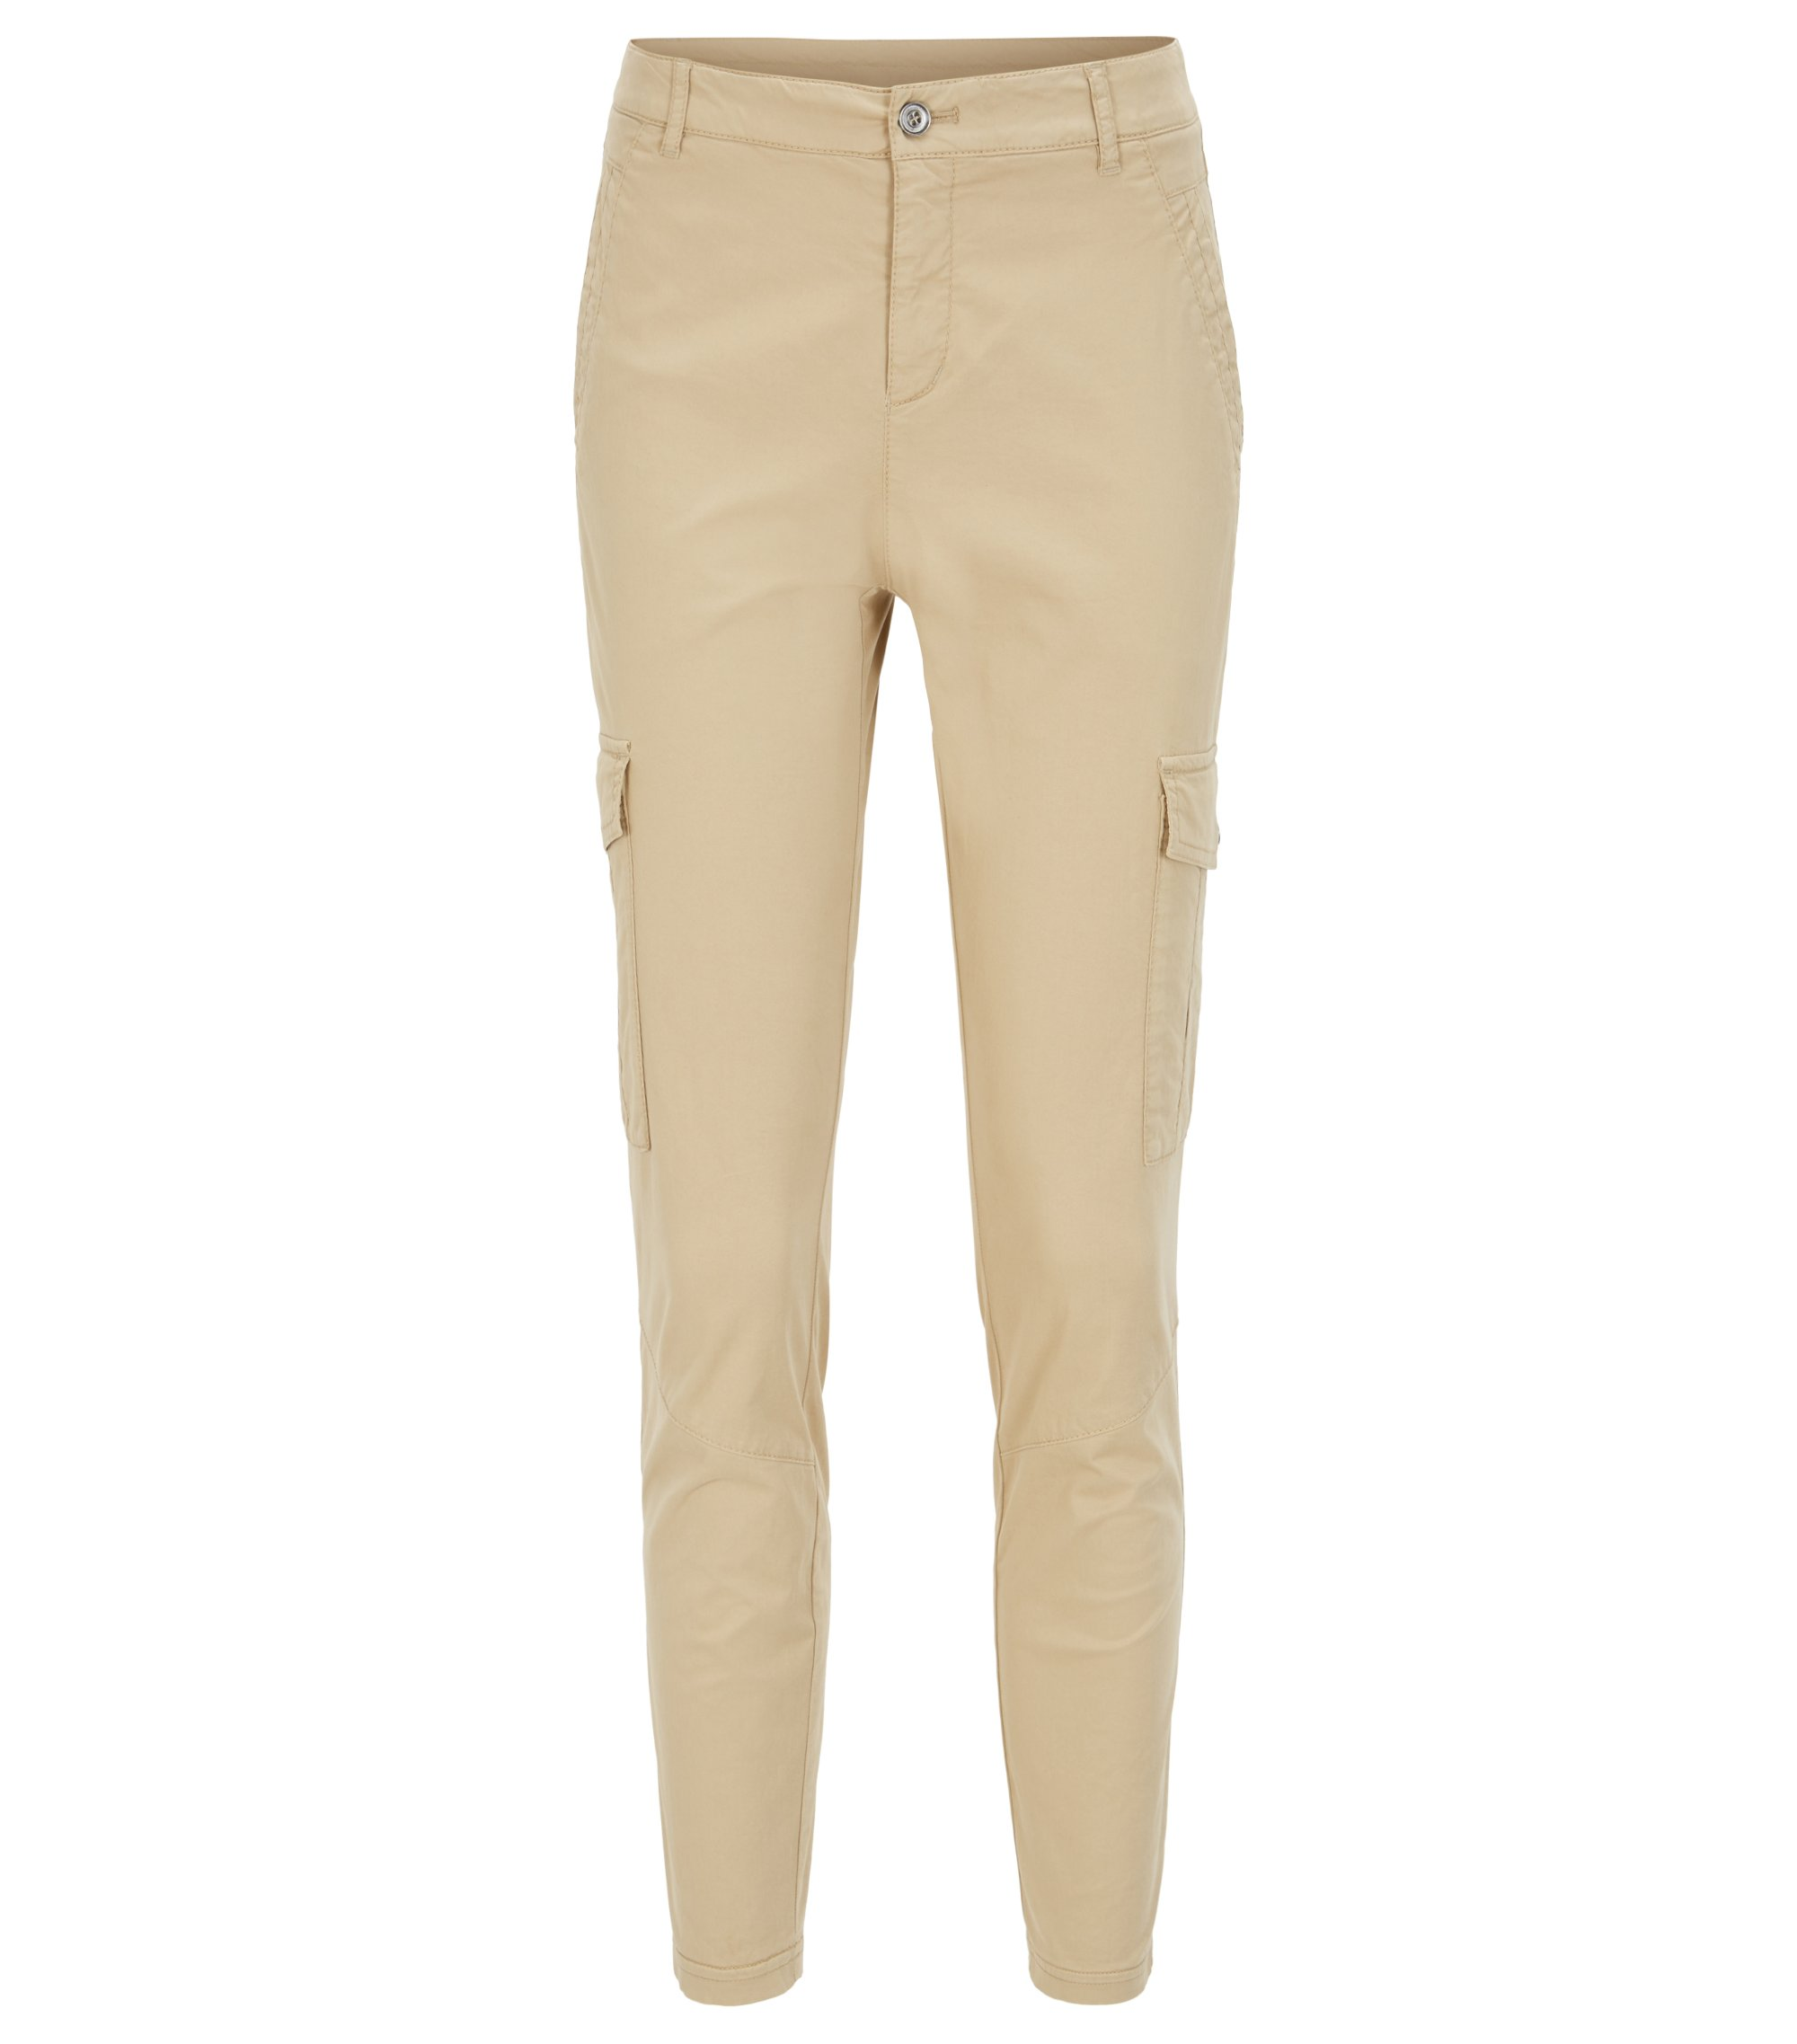 Pantalon cargo Slim Fit en coton stretch, Beige